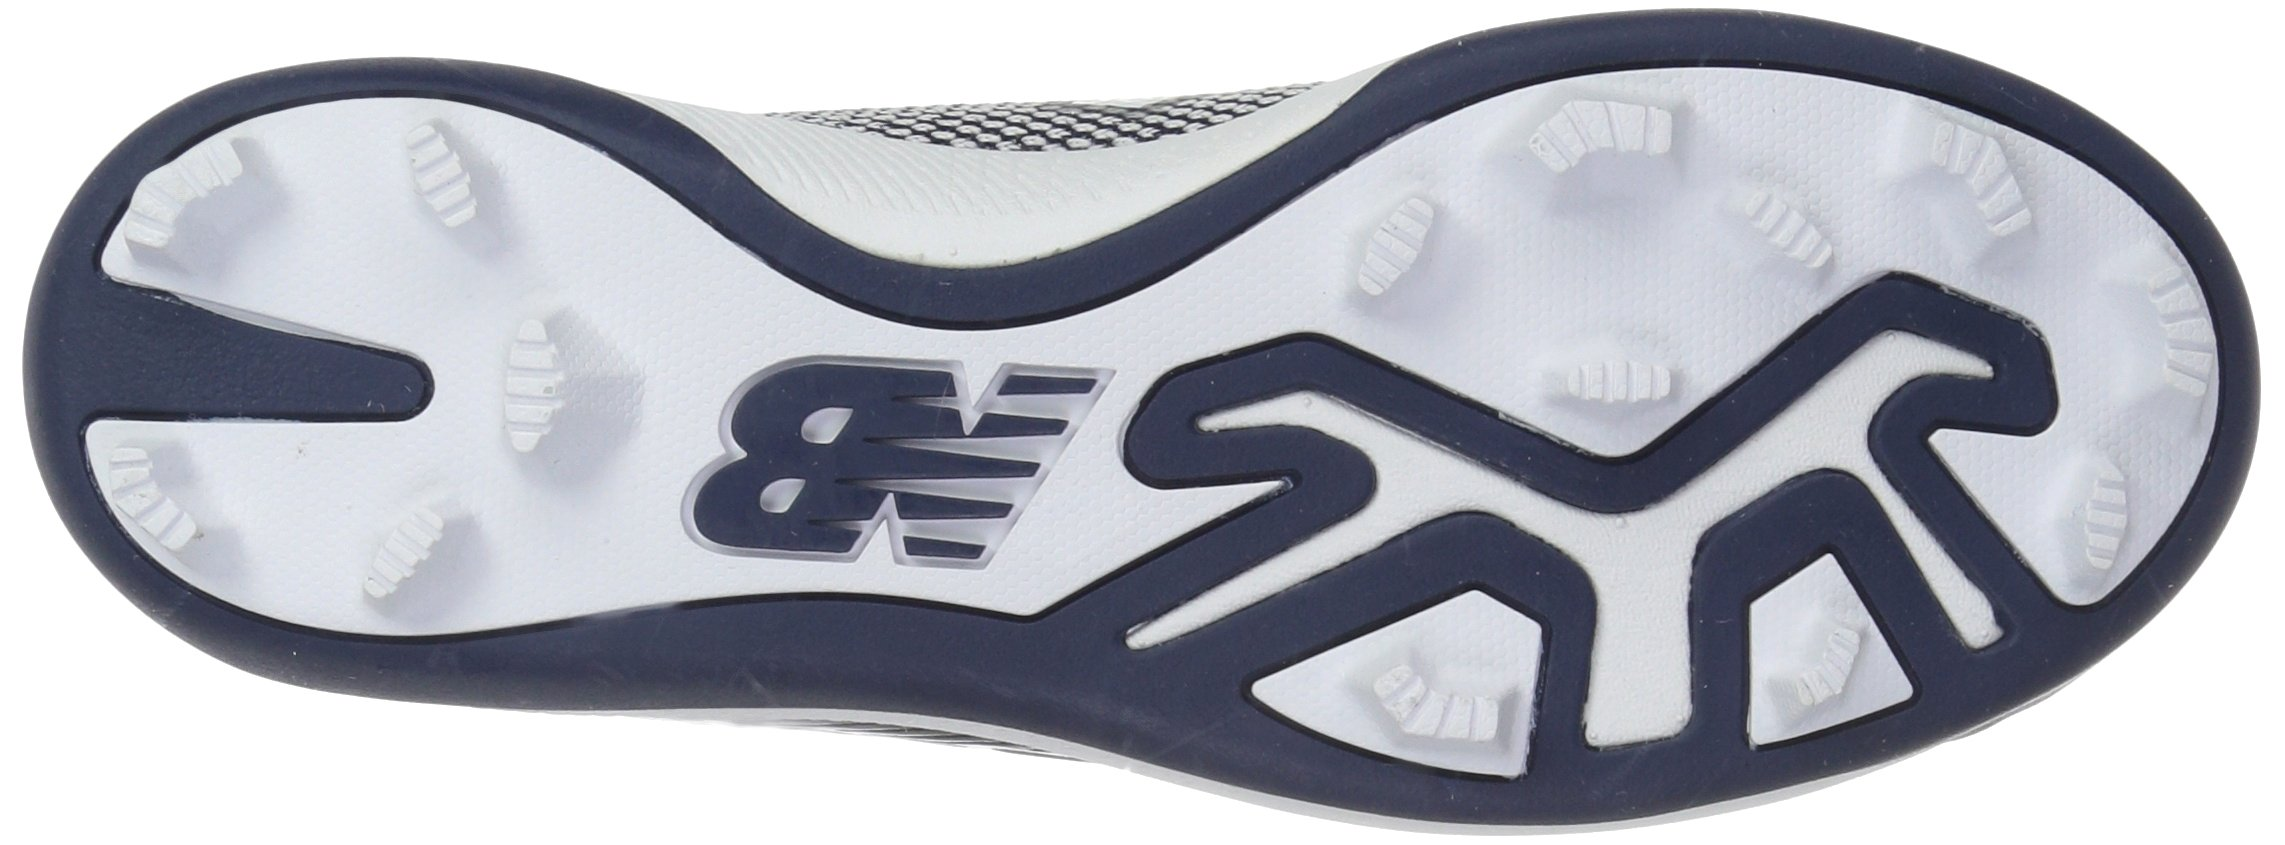 New Balance Boys' 4040v4, Navy/White, 1 W US Little Kid by New Balance (Image #3)